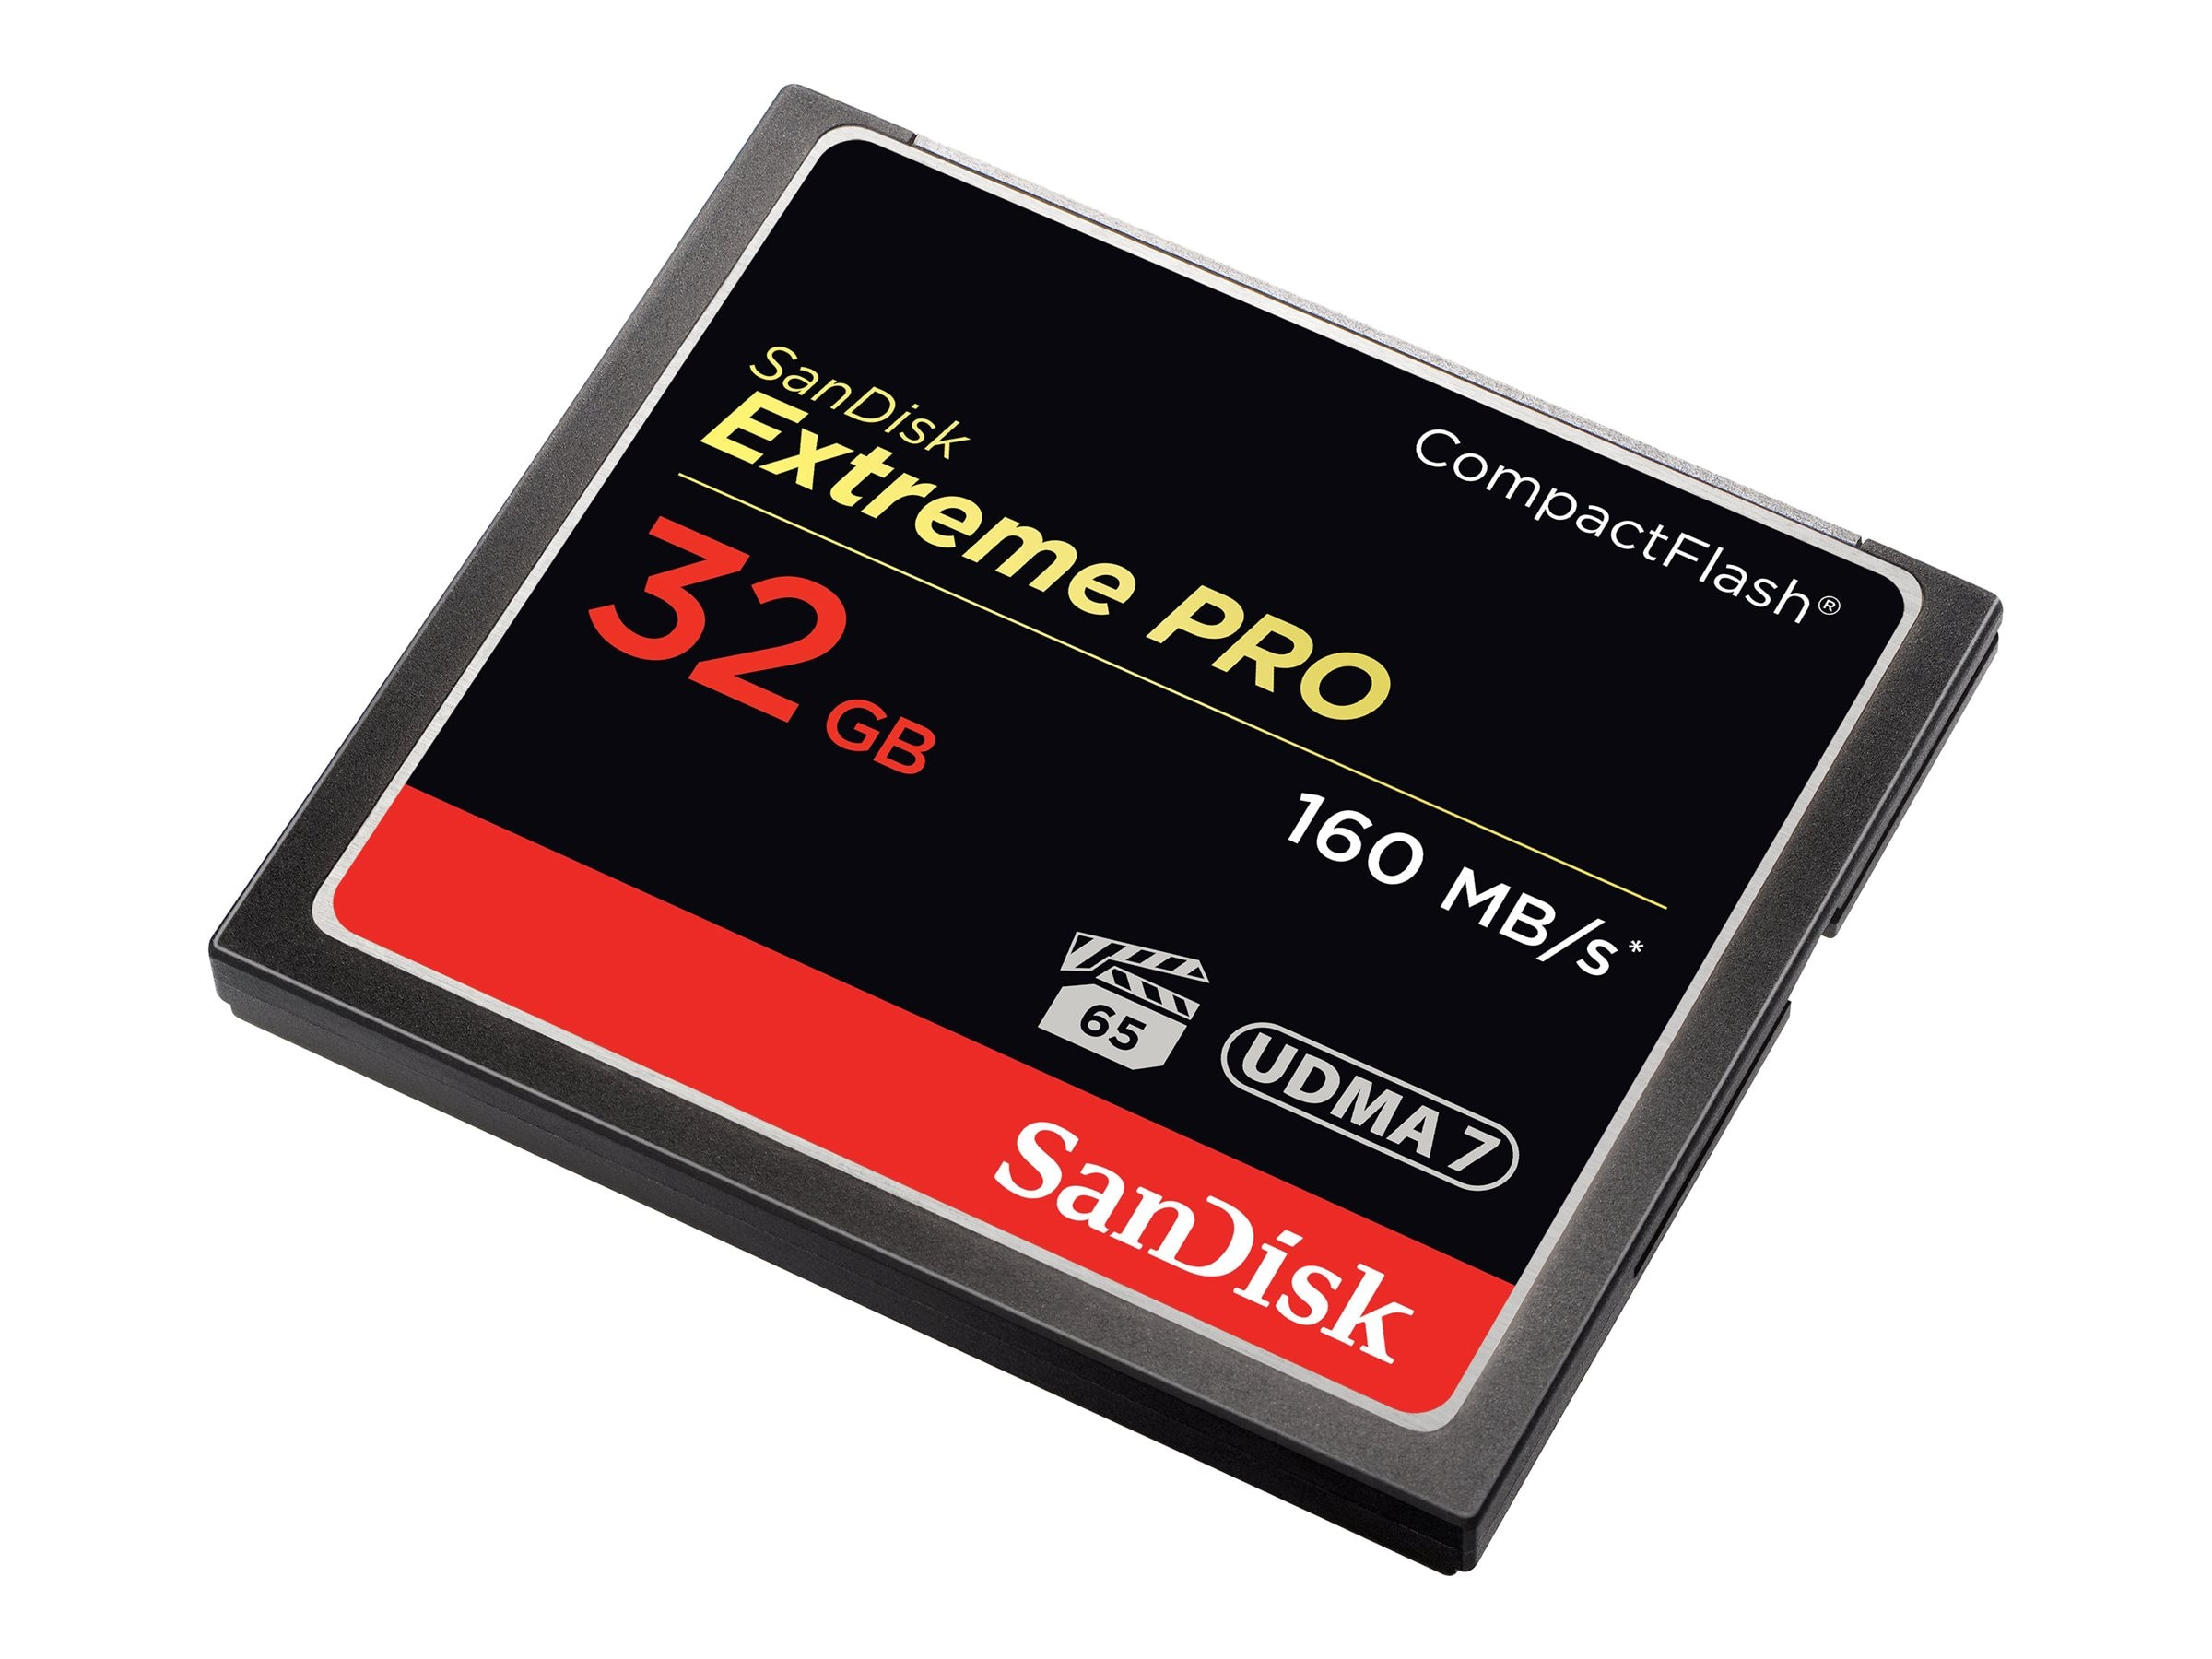 SanDisk 32GB CompactFlash Extreme Pro Memory Card, SDCFXPS-032G-A46